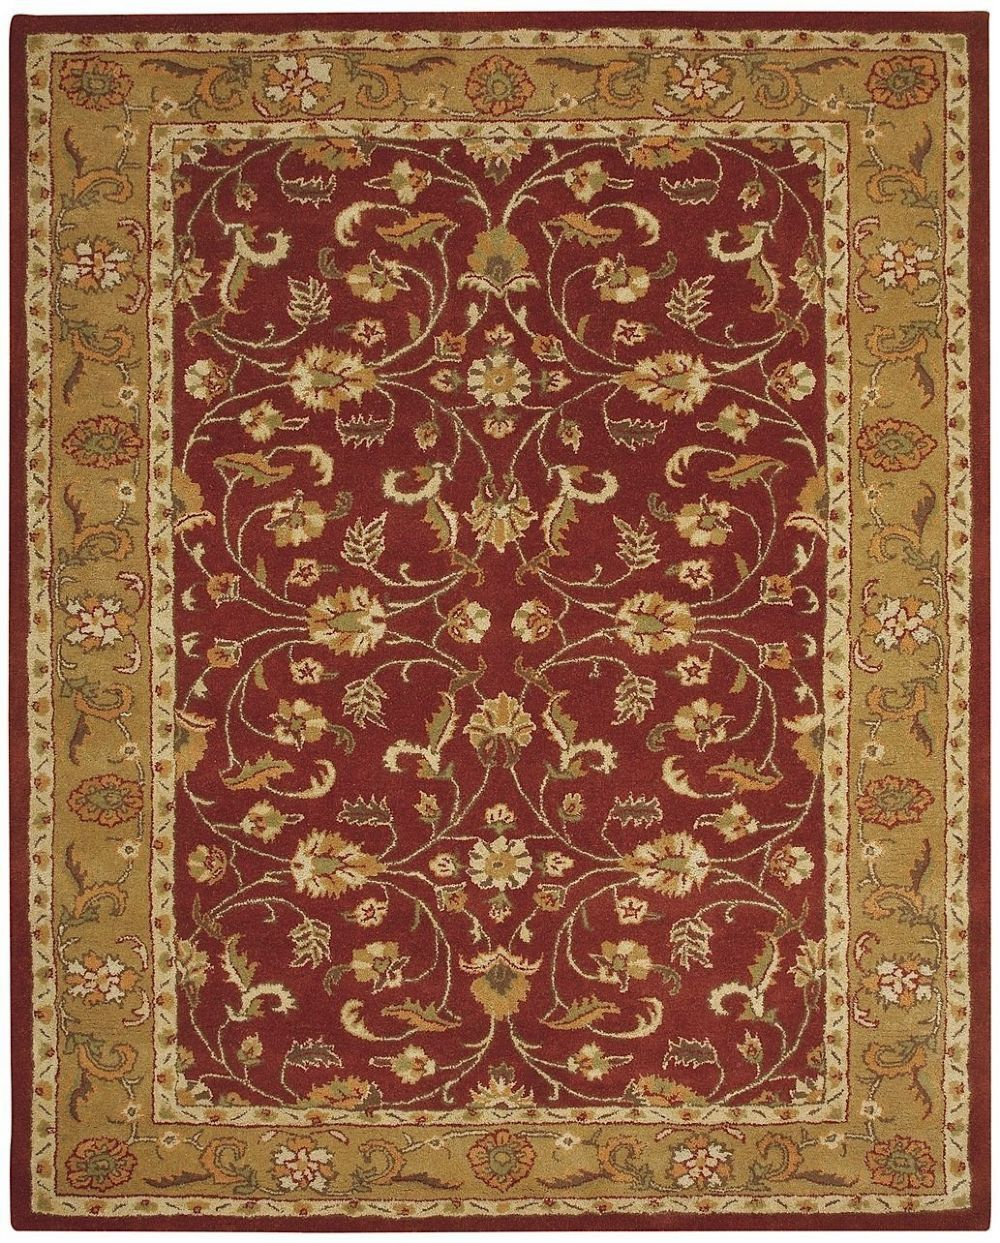 capel charisma-sarouk traditional area rug collection